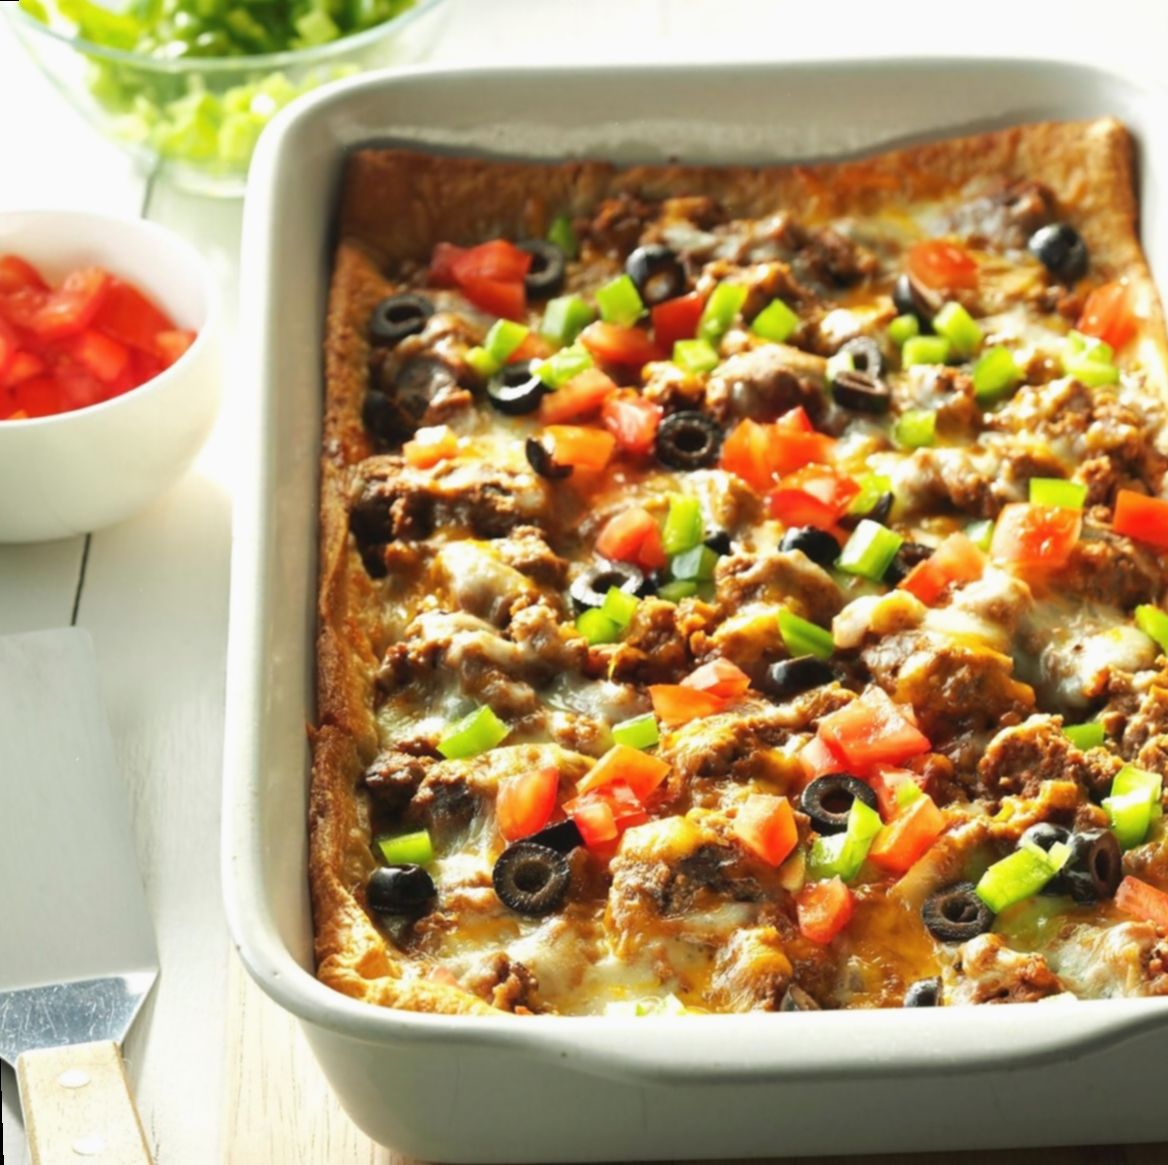 Dinner Ideas Mexican Crescent Rolls Insiderfood Thisisinsider Feedfeed In 2020 Beef Casserole Recipes Ground Beef Casserole Recipes Burrito Bake Recipe